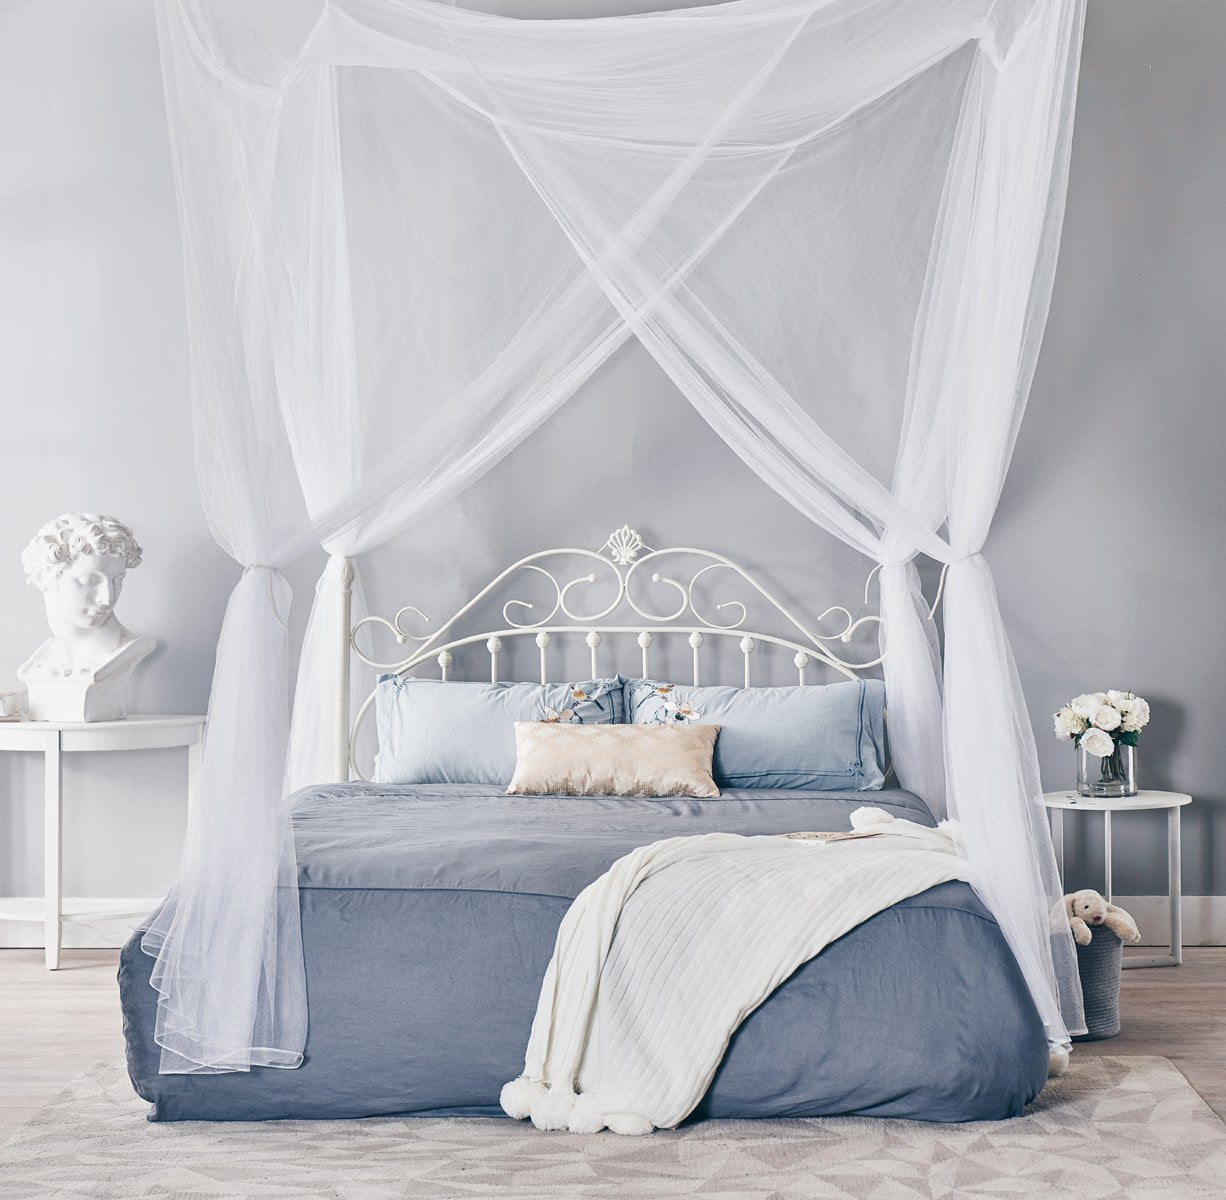 Truedays Four Corner Post Bed Princess Canopy Mosquito Net Full/Queen/King Size : corner canopy bed - memphite.com